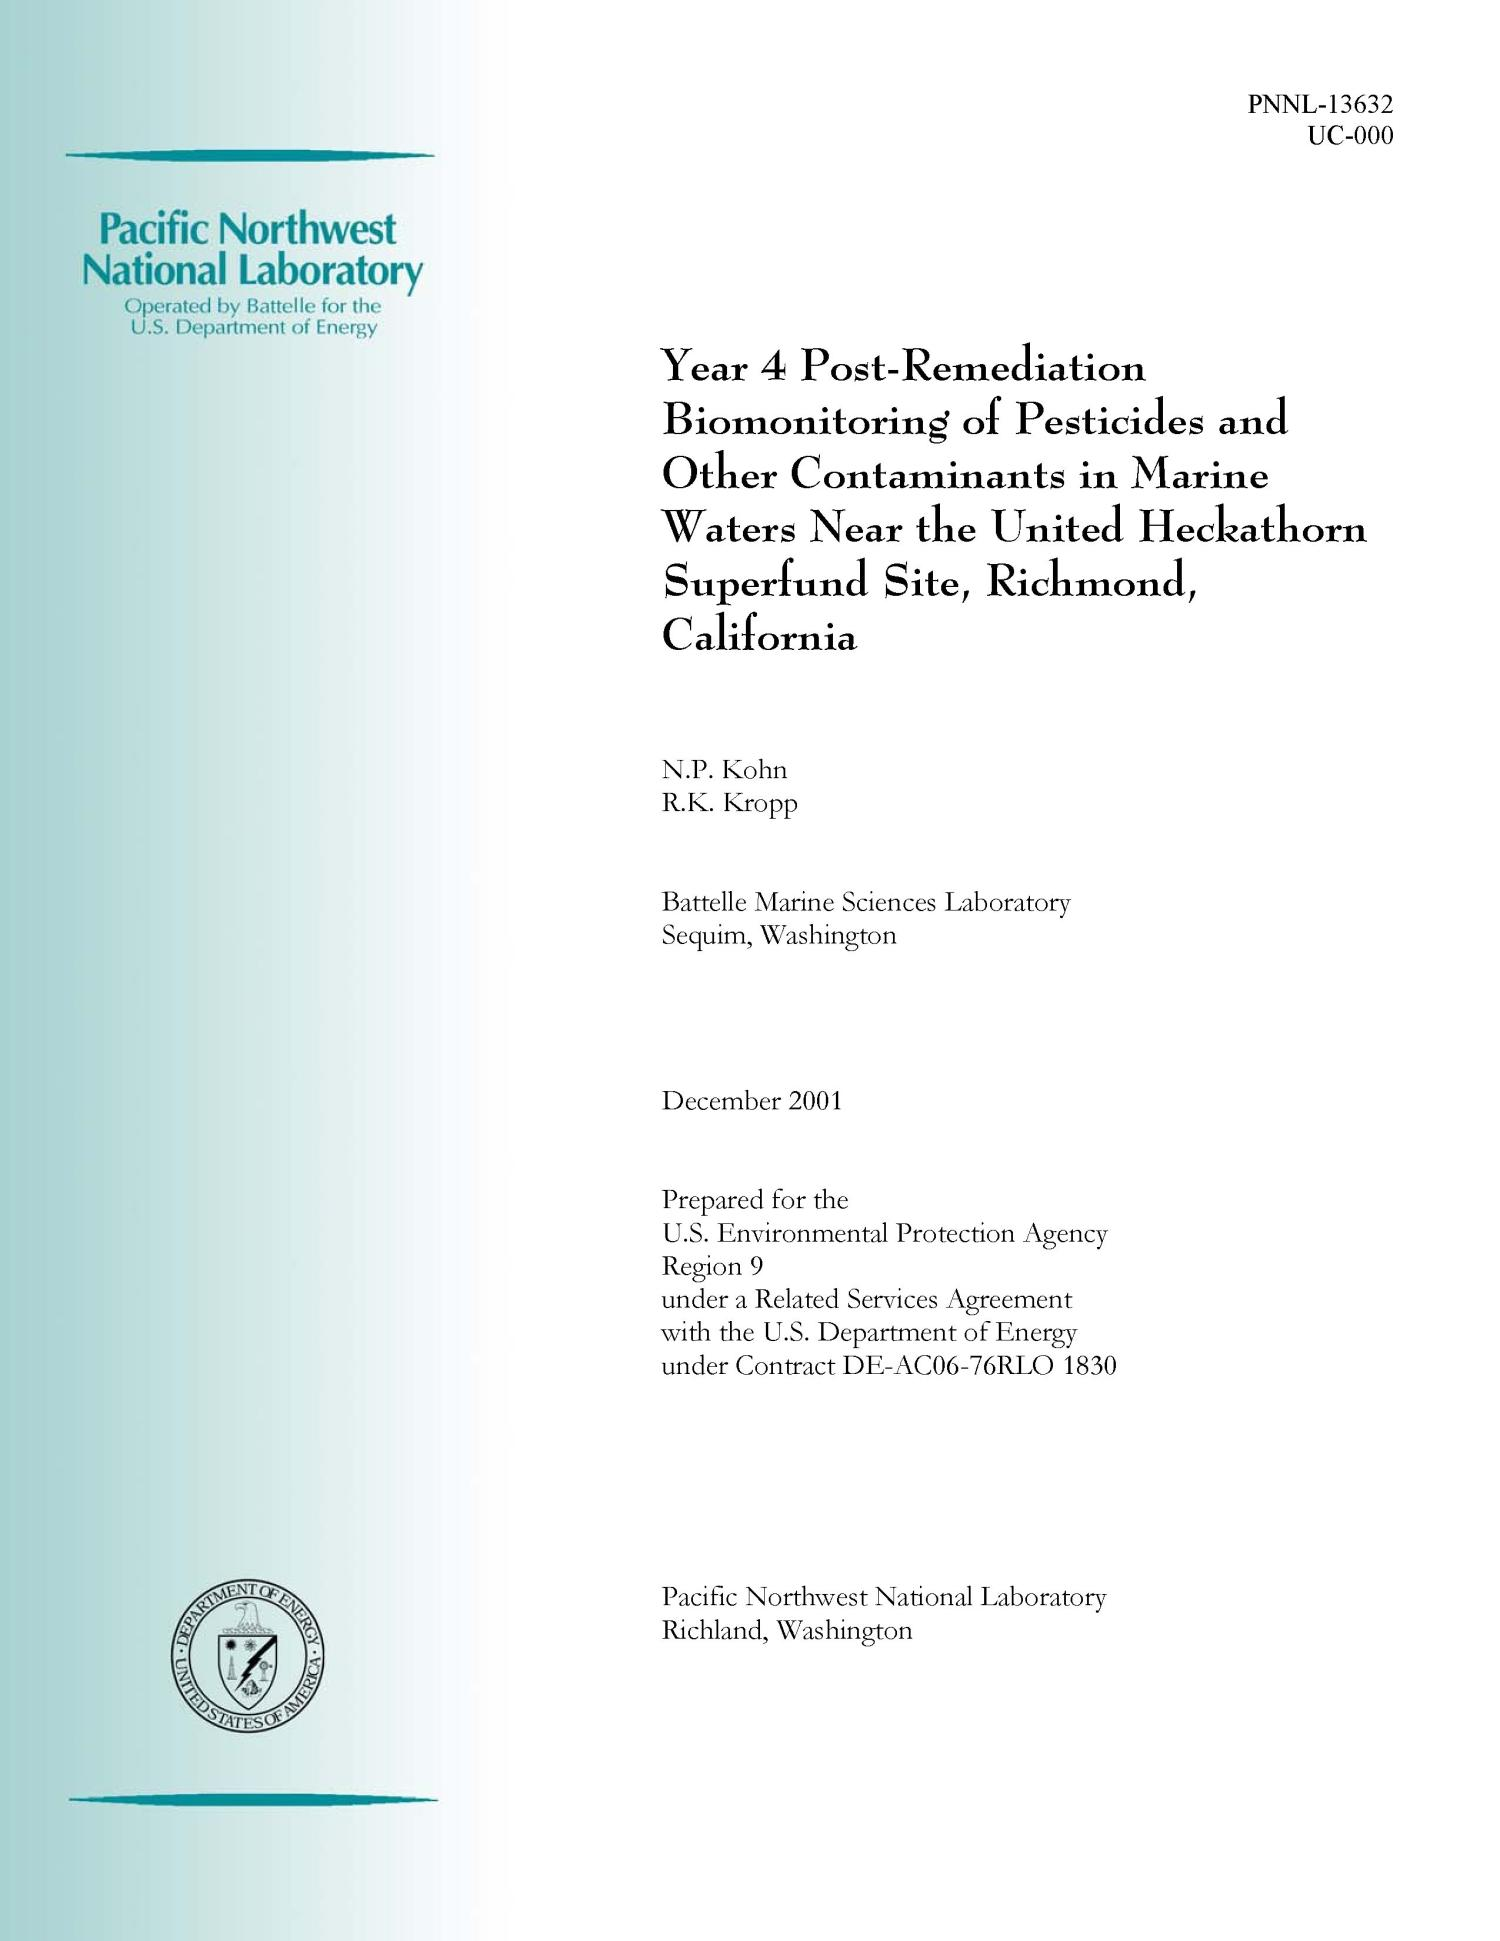 Year 4 Post-Remediation Biomonitoring of Pesticides and Other Contaminants in Marine Waters Near the United Heckathorn Superfund Site, Richmond, California                                                                                                      [Sequence #]: 1 of 59